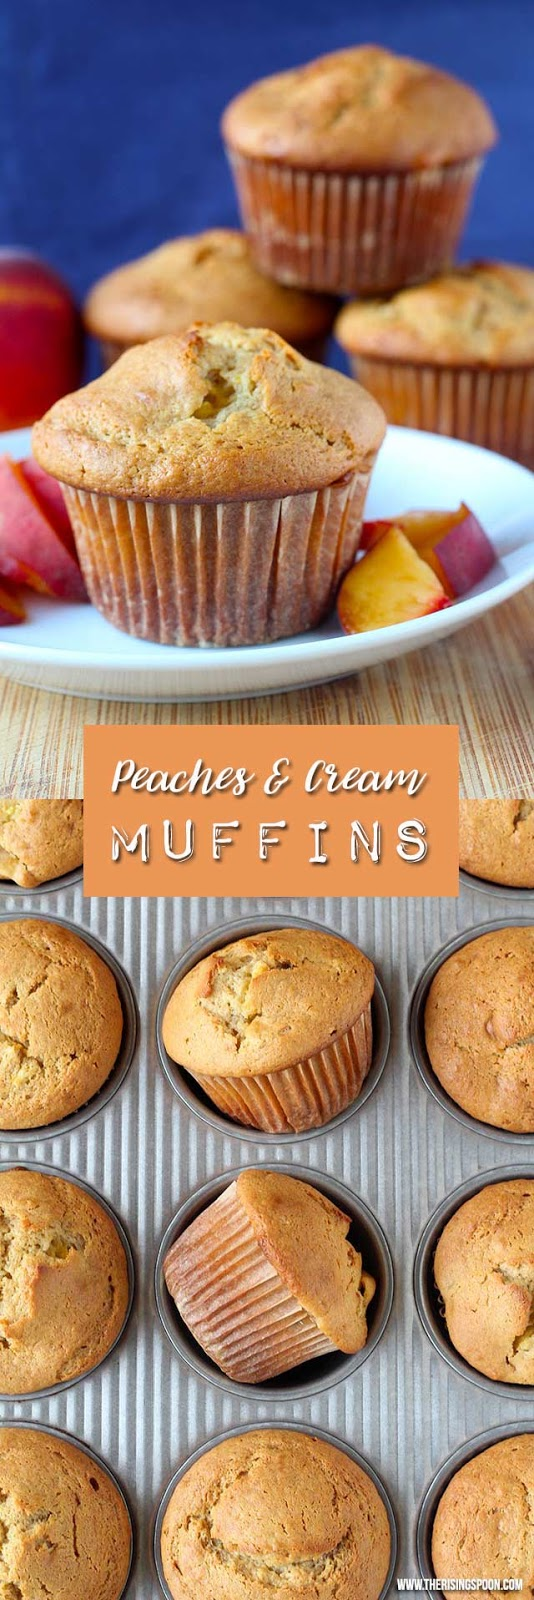 A light peaches and cream style breakfast muffin made with fresh peaches, sour cream, honey, and einkorn wheat flour. This recipe freezes well, has a good amount of protein, and makes a yummy snack or dessert!